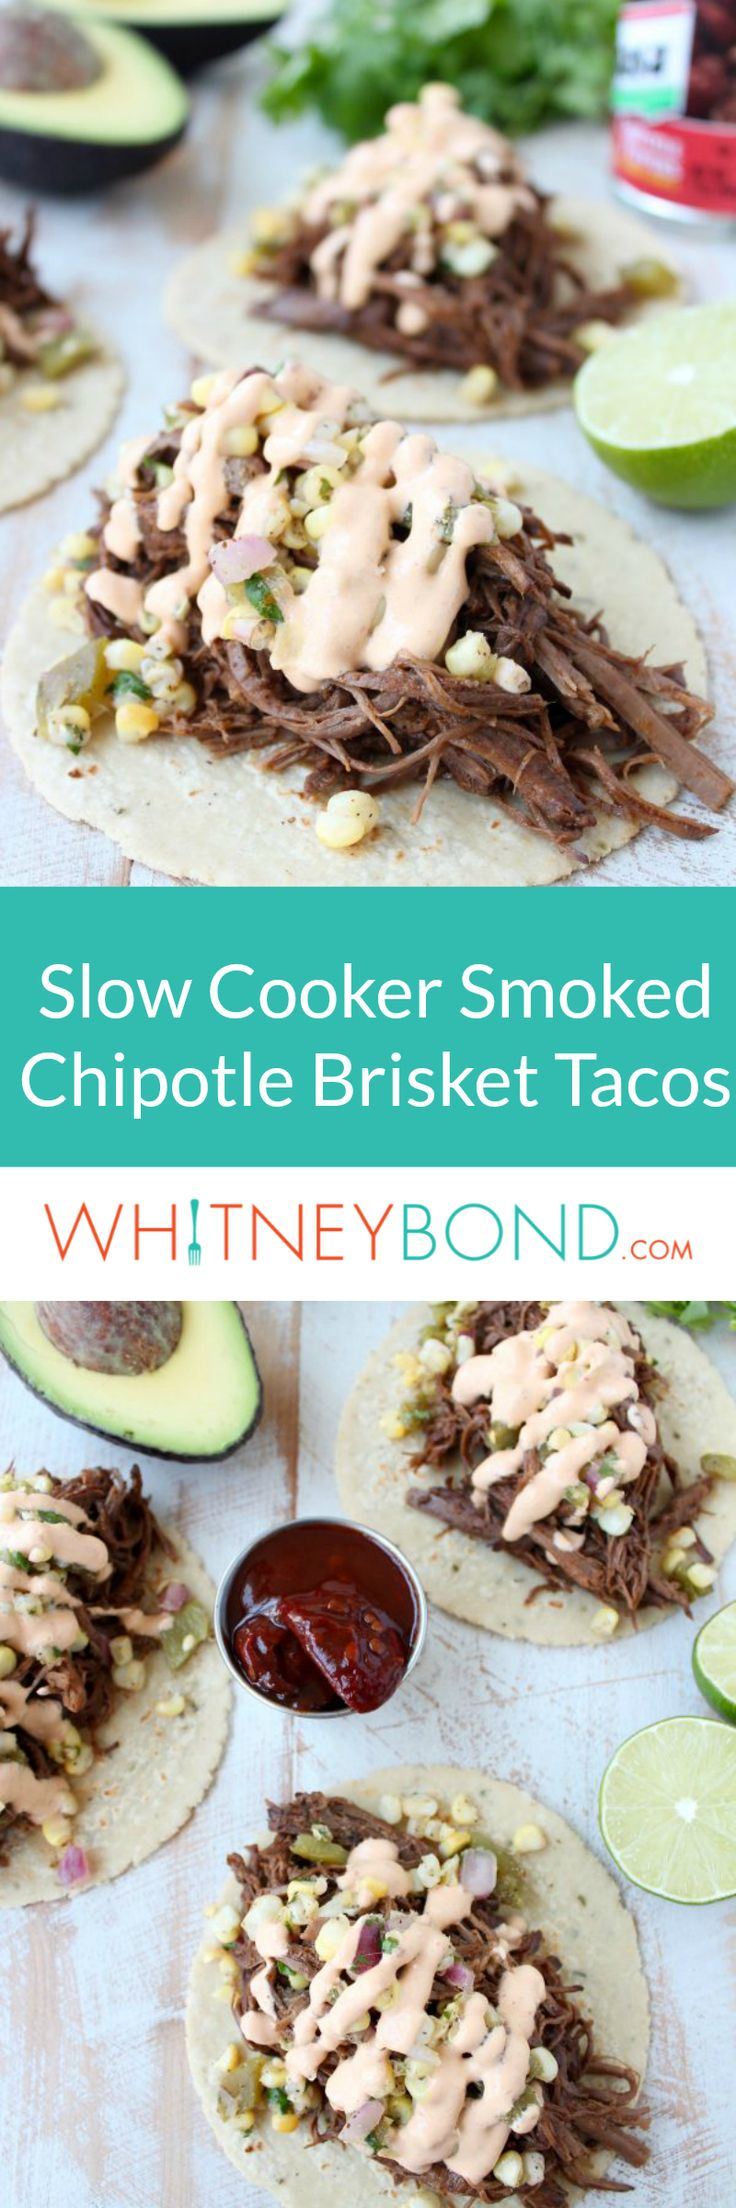 Slow Cooker Brisket With Chipotle-Cranberry Sauce Recipe — Dishmaps